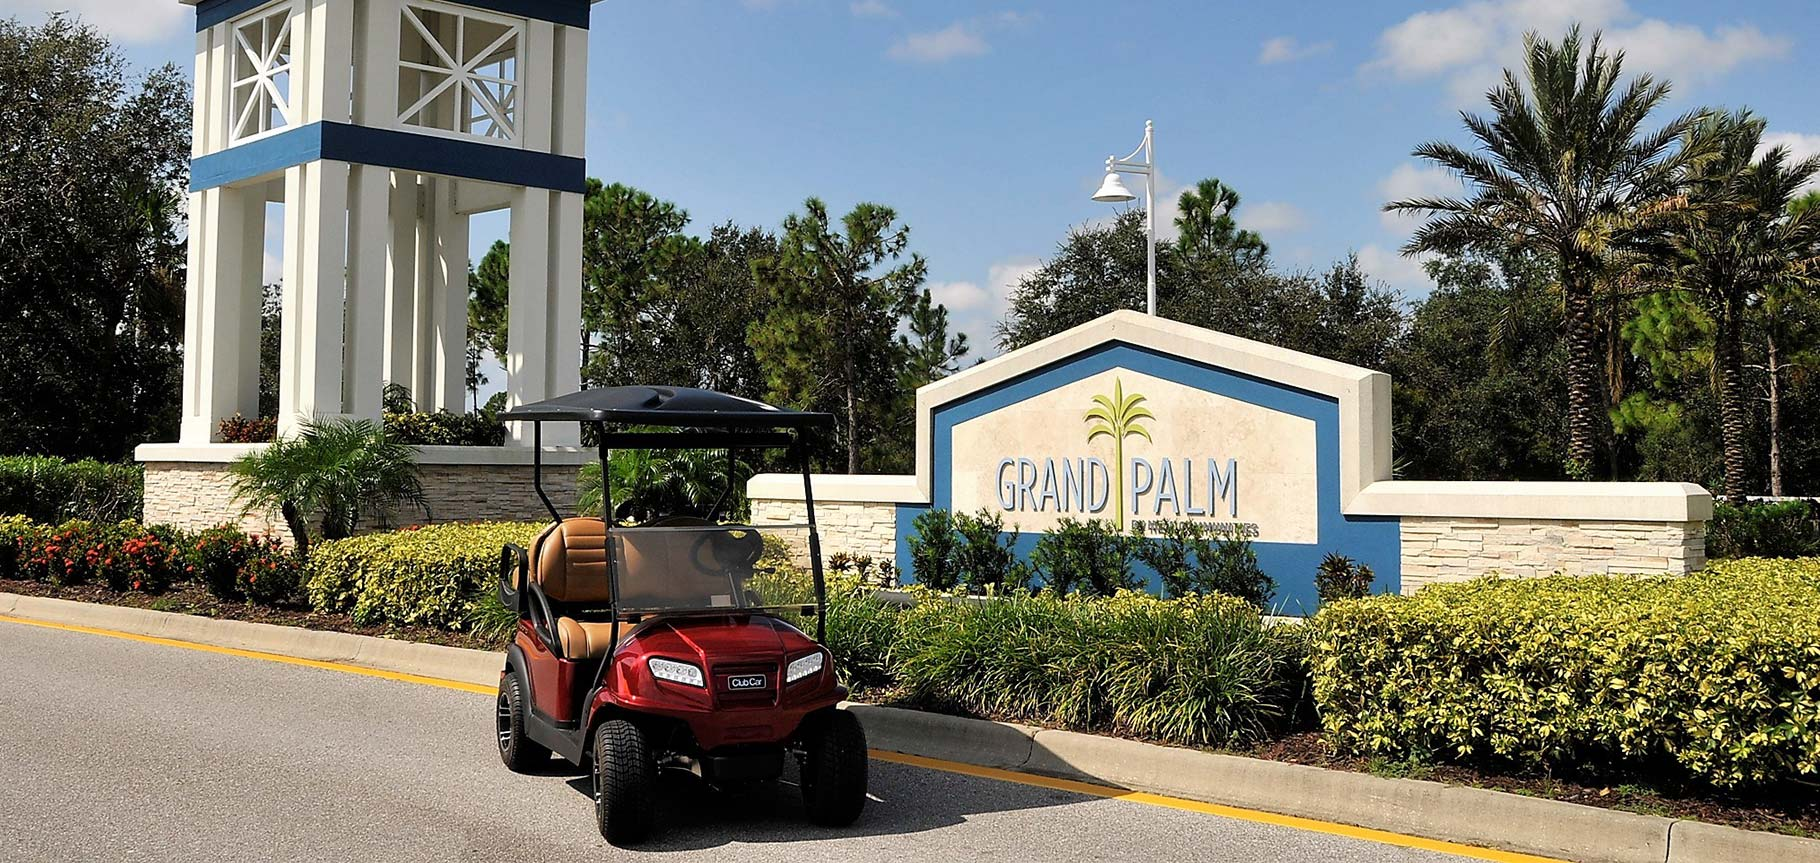 Grand Palm entrance sign image